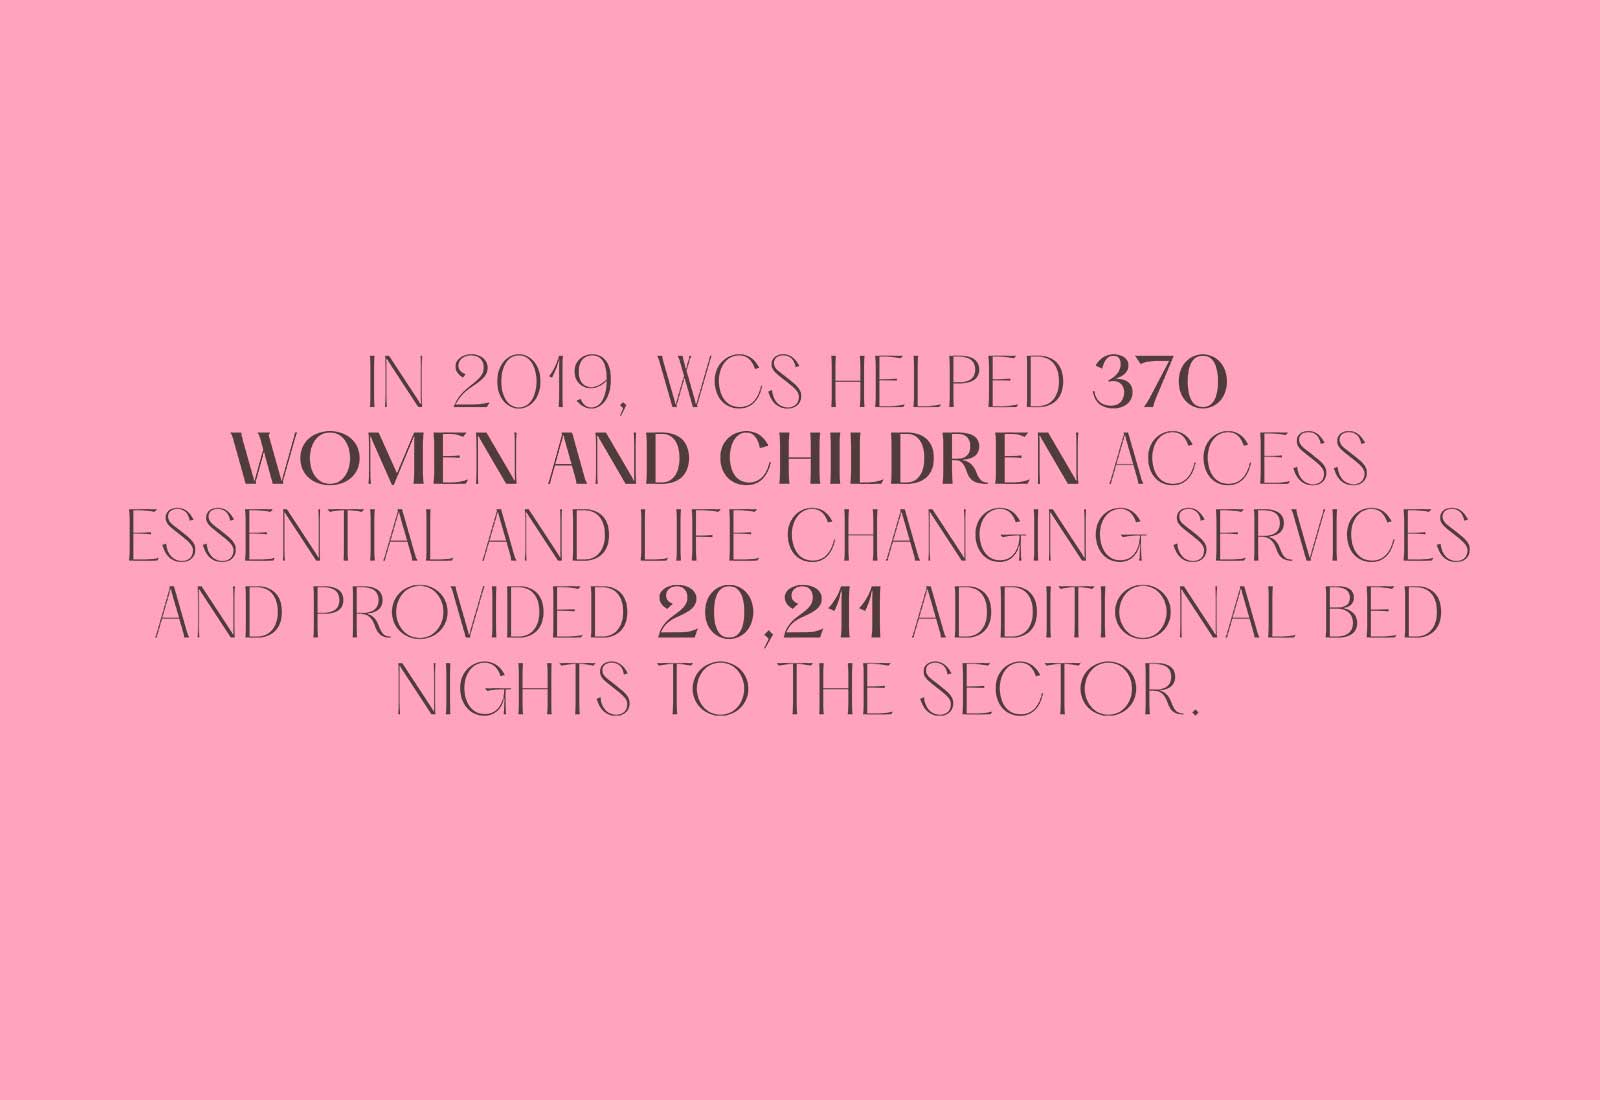 You've helped 370 women and children